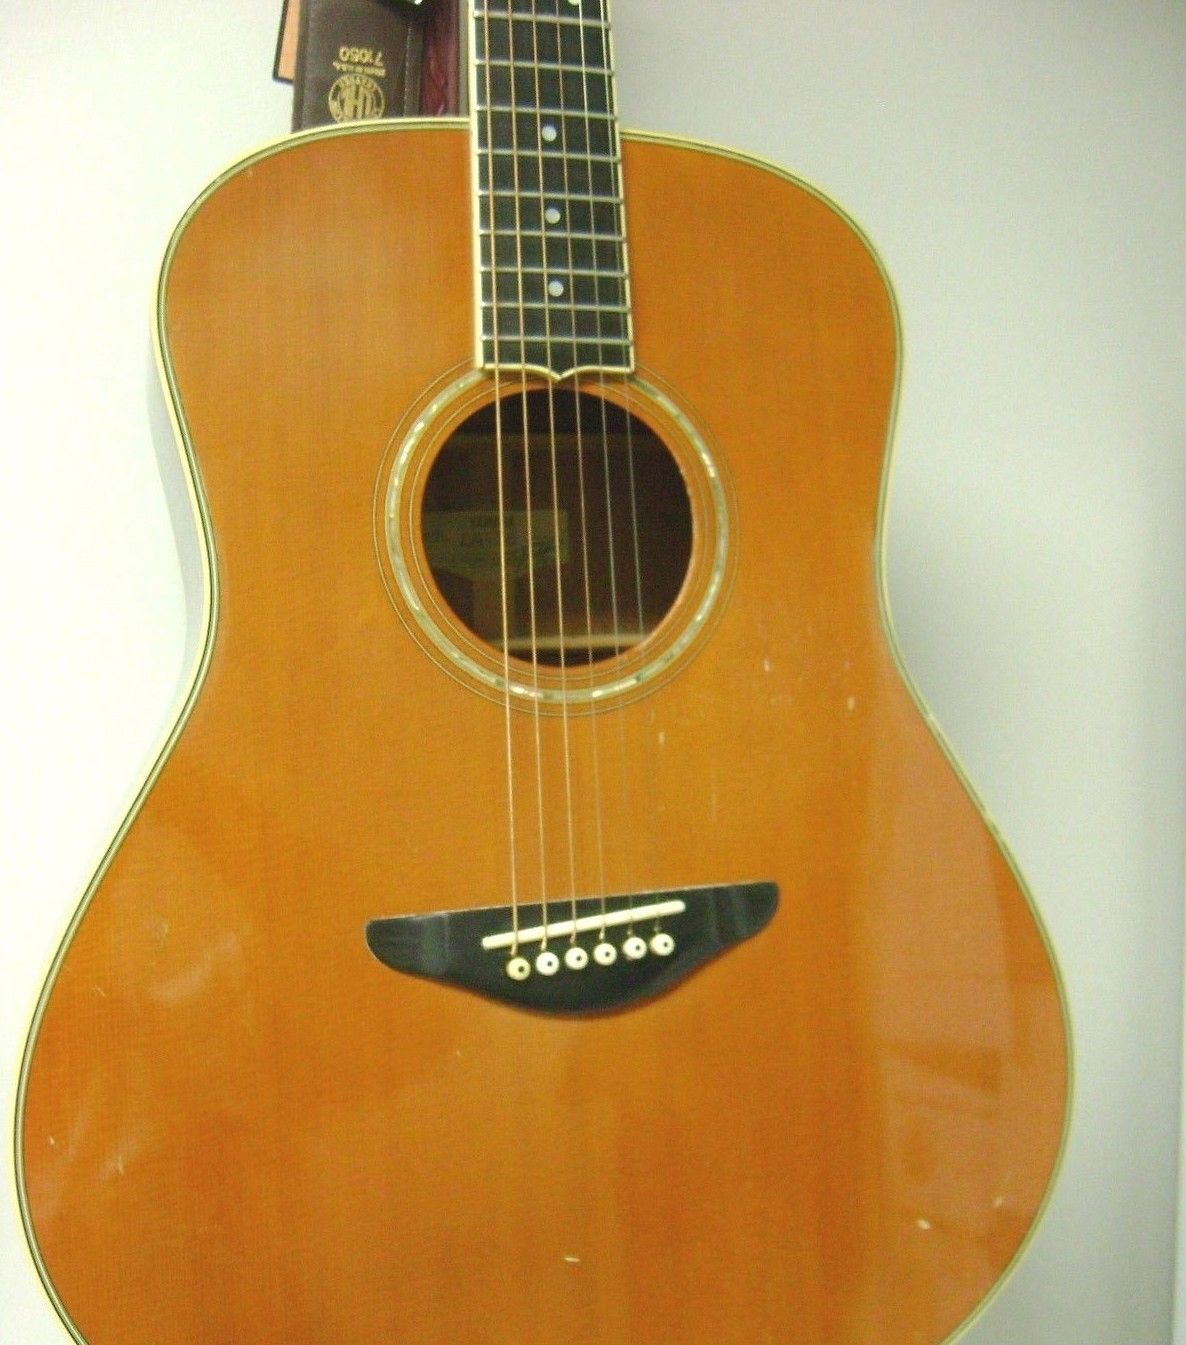 Yamaha LA-18 Handcrafted Acoustic Guitar w/pick up & a case